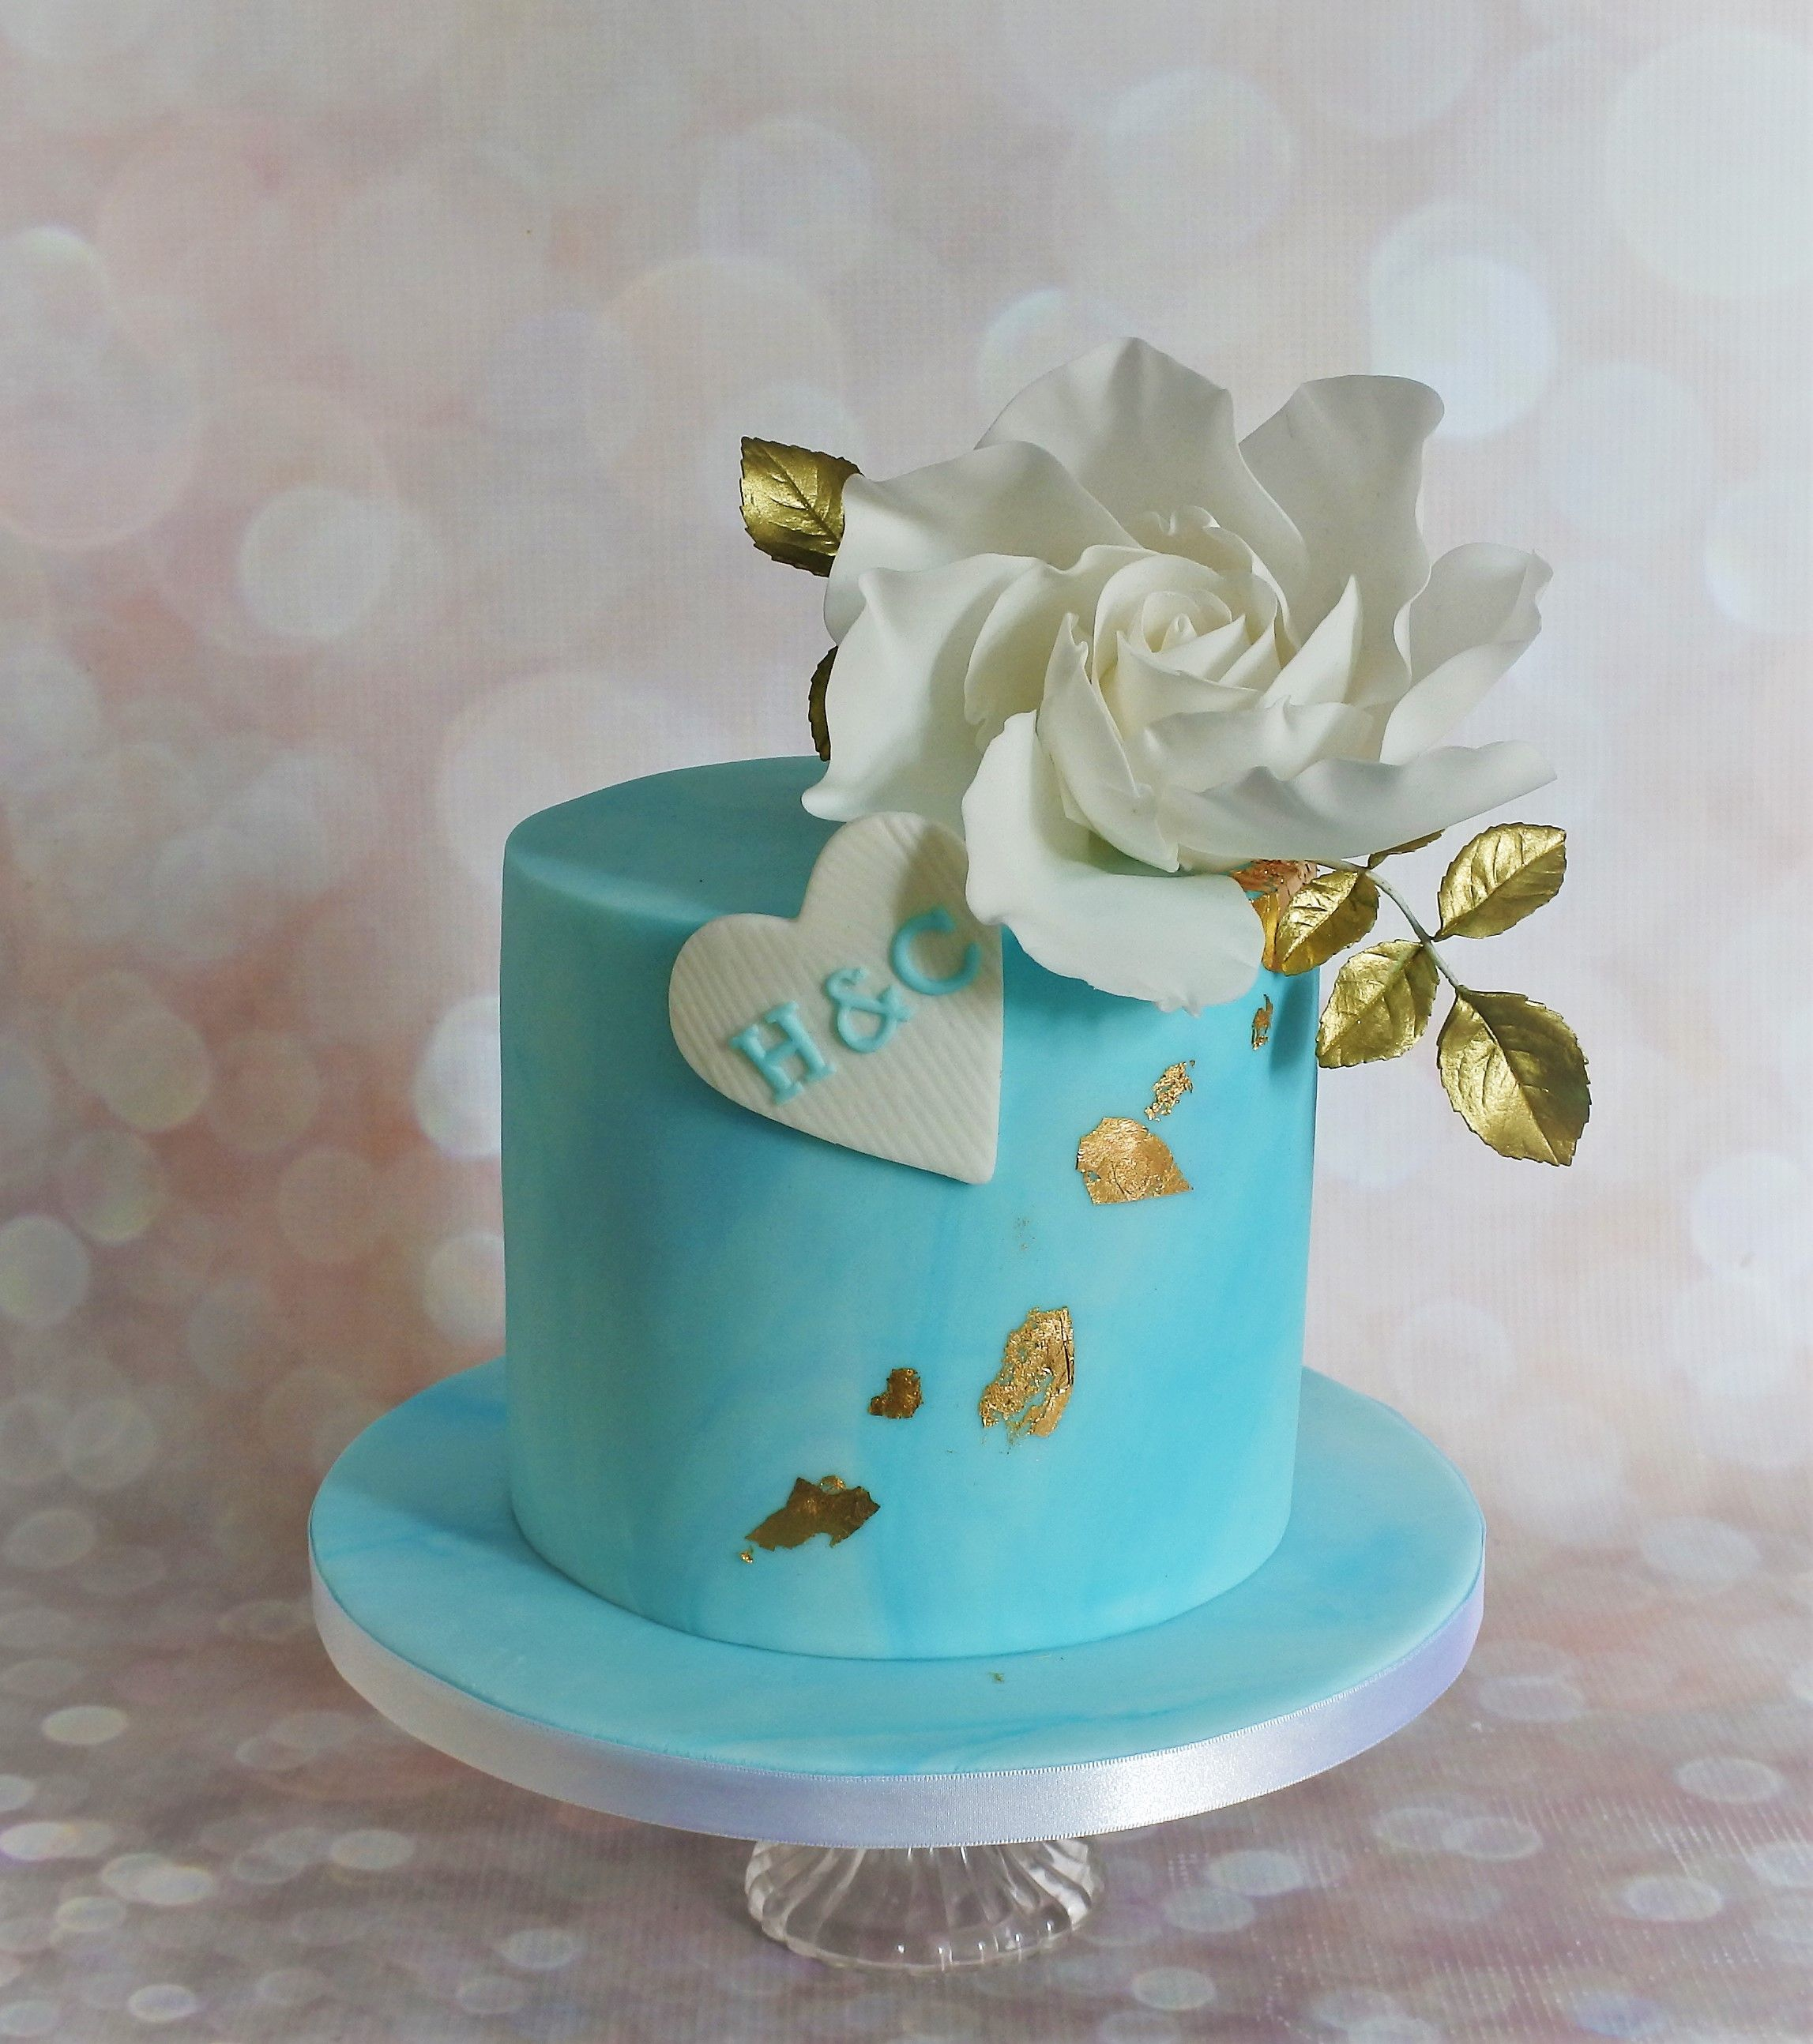 1 Tier Blue Marbled Wedding Cake With Edible Gold Leaf Large White Sugar Rose And Gold Leaves Simple Birthday Cake Simple Wedding Cake Cake